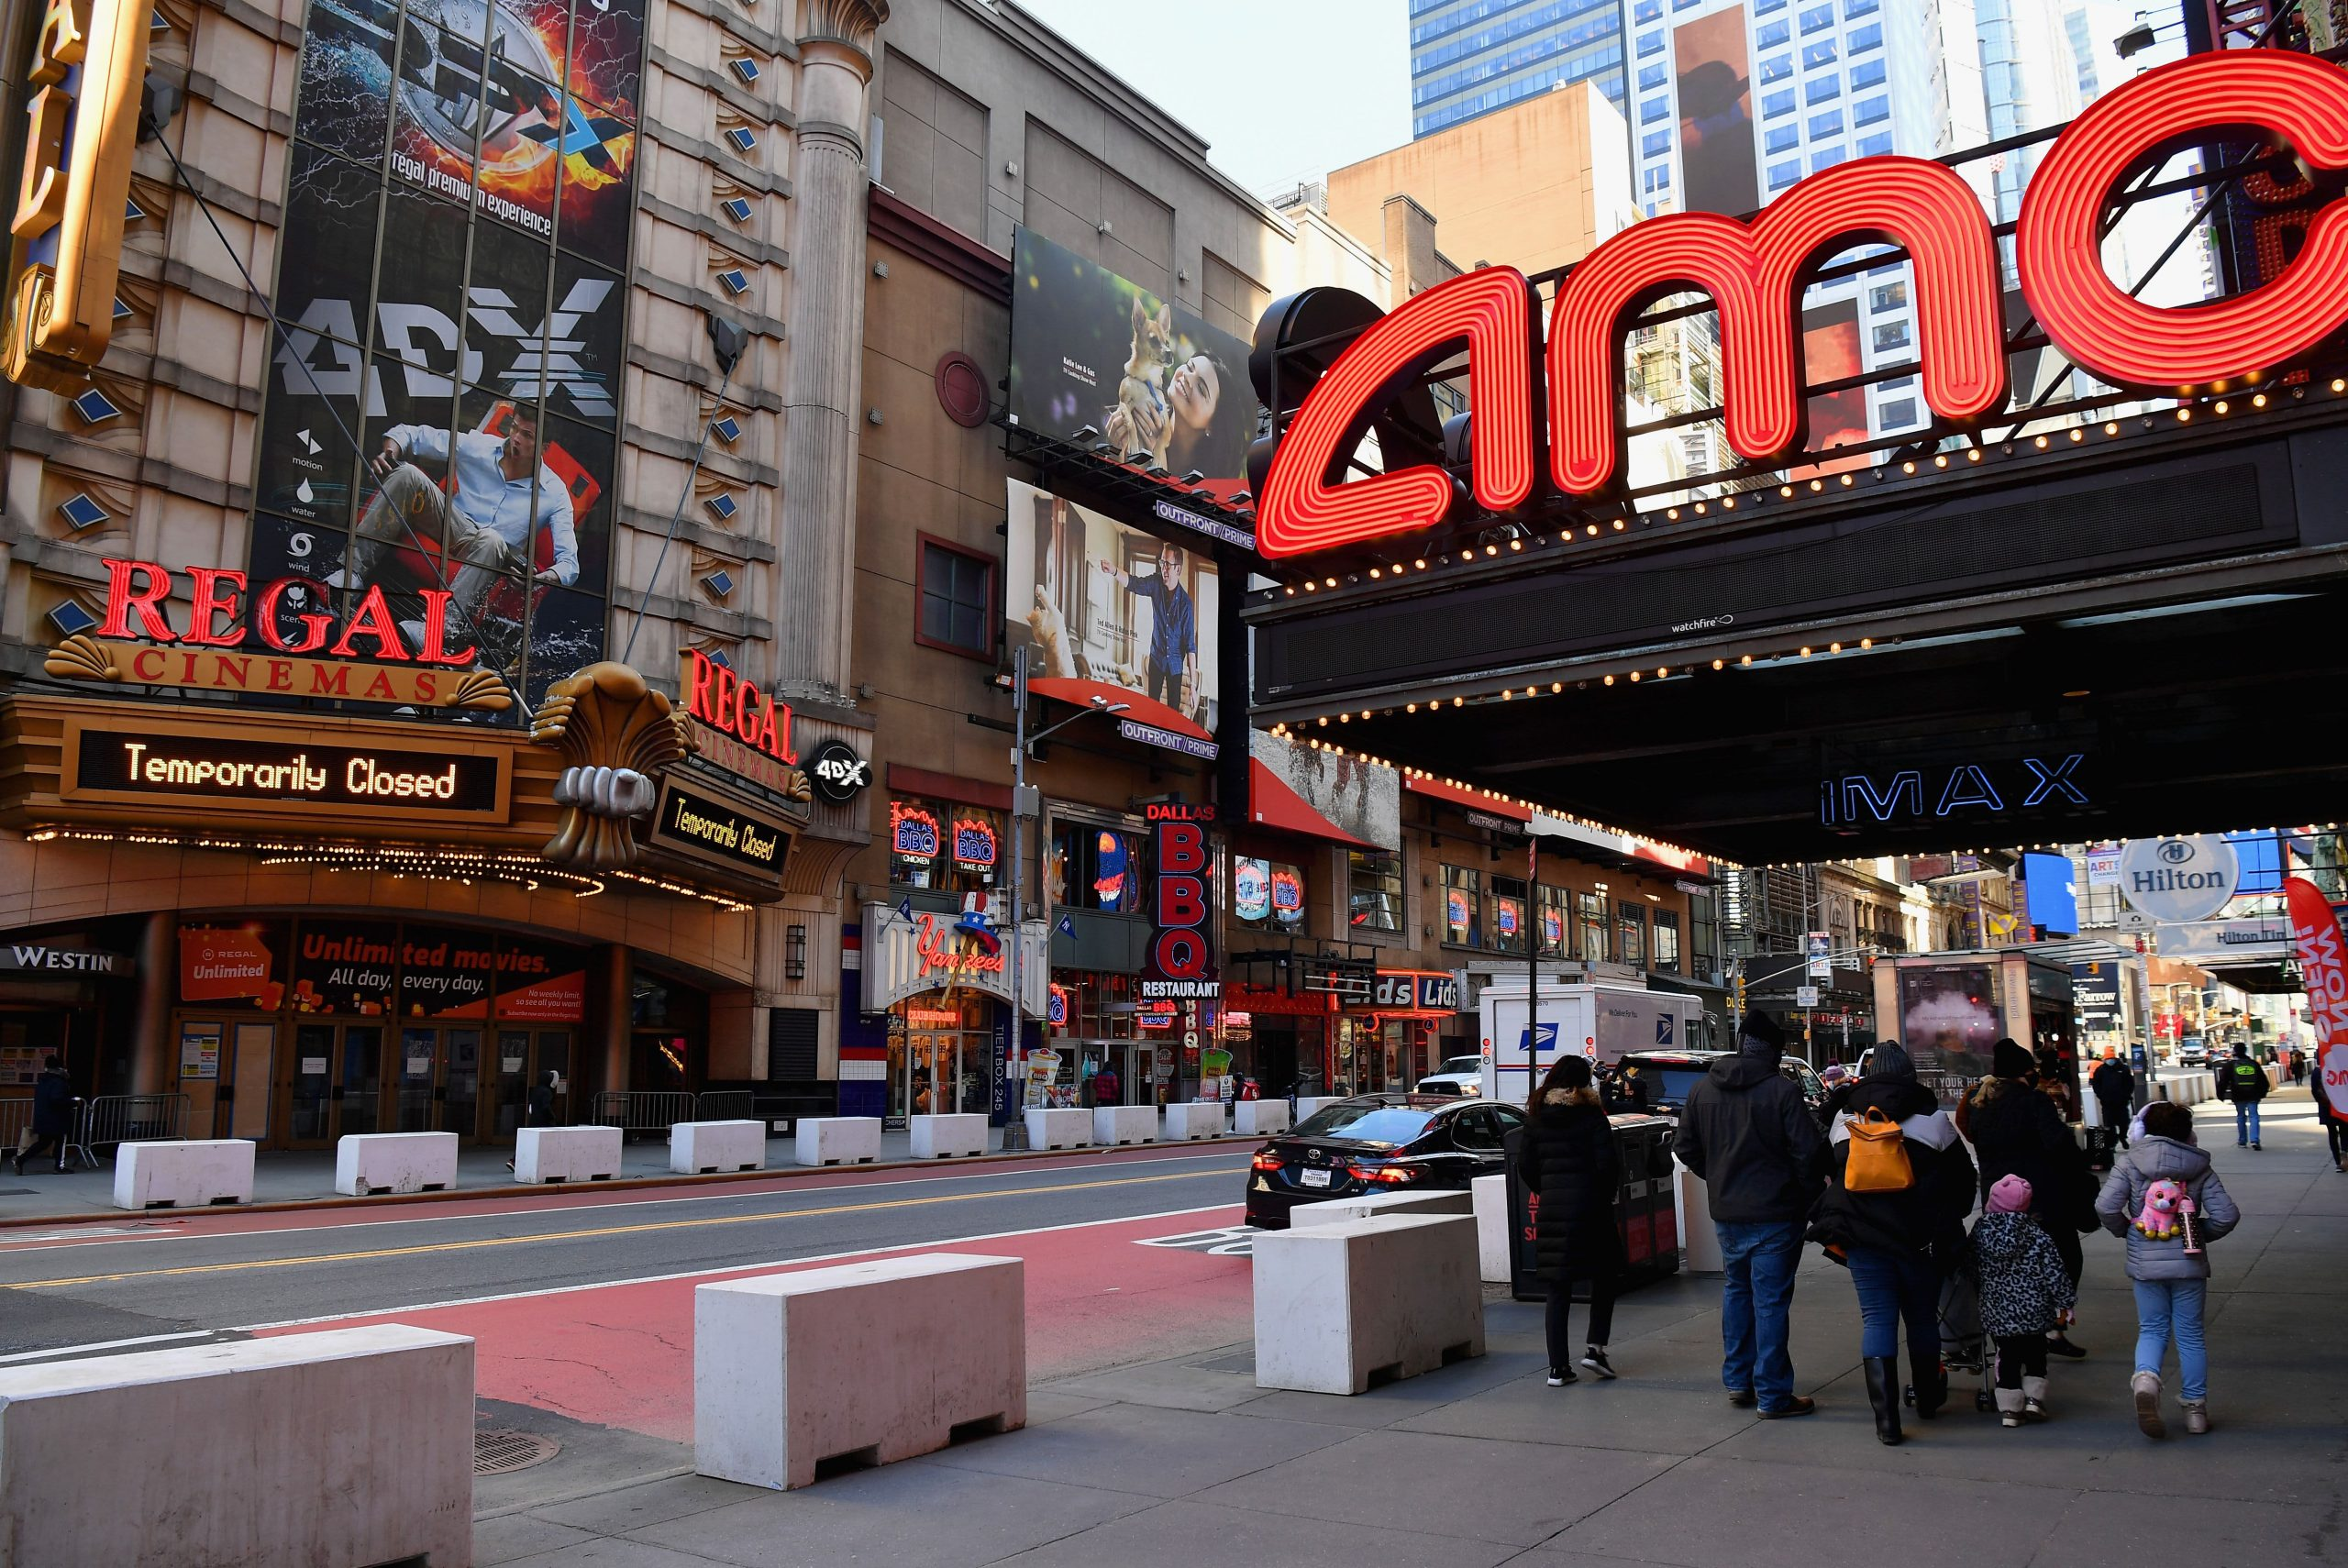 Meme stock AMC extends rally, jumps 17% as theater chain sells new shares to an investor